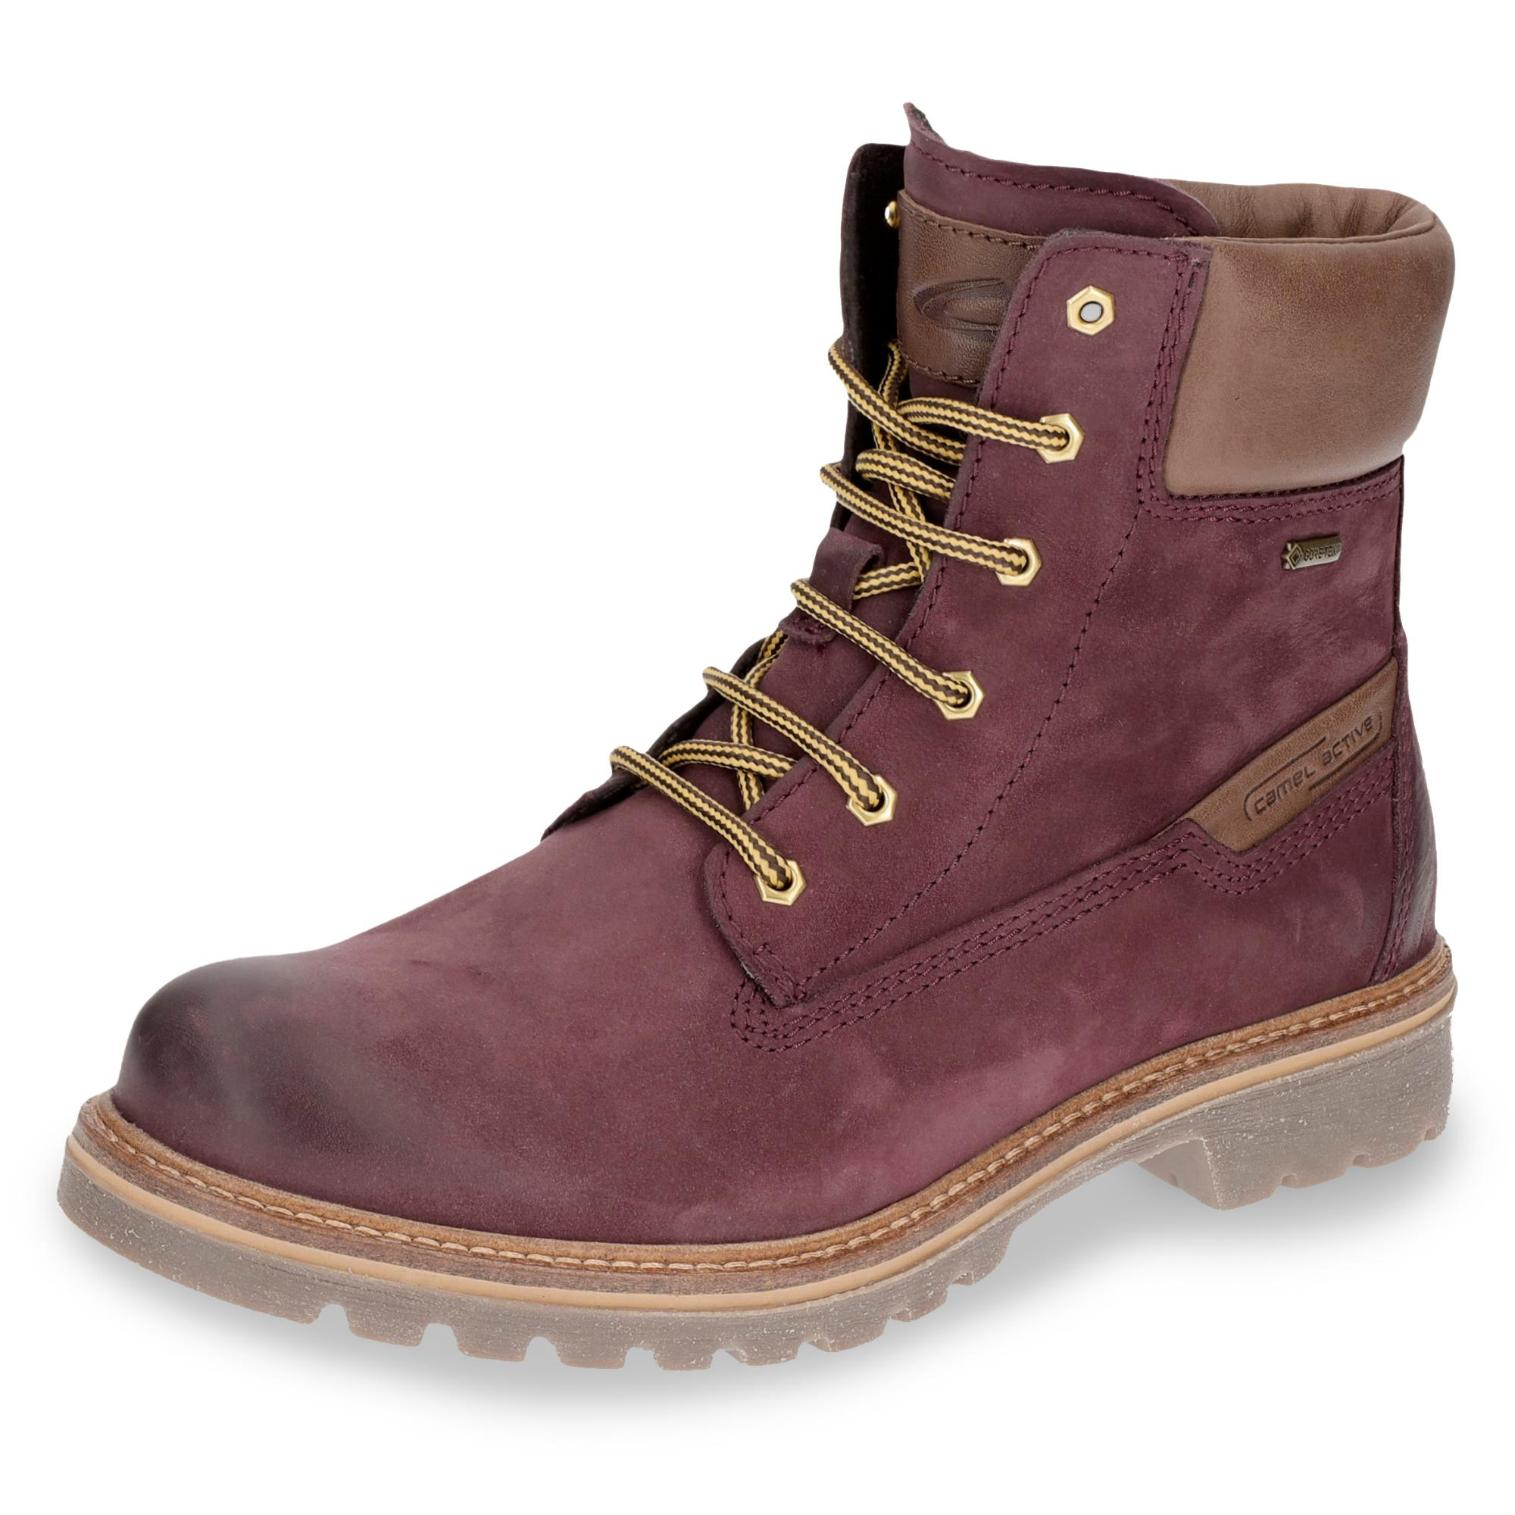 Camel Active Canberra GORE-TEX-Boots in Farbe bordeaux um 20% reduziert online kaufen